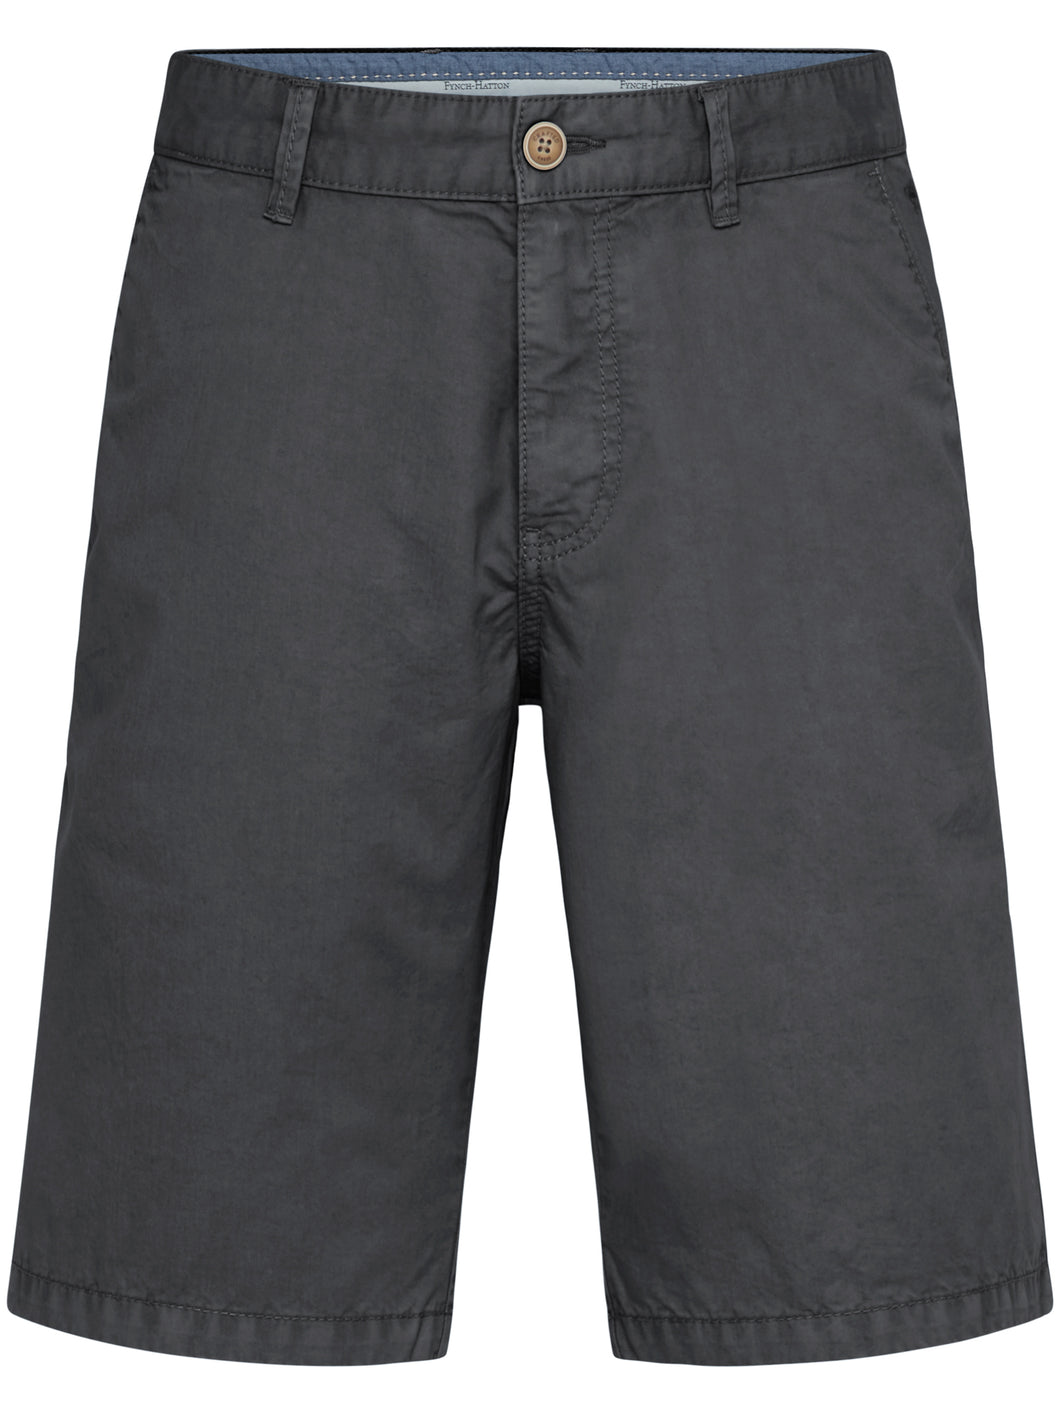 Fynch Hatton Shorts, Cotton, Garment Dyed in regular Classic fit.    Chosen in  Charcoal